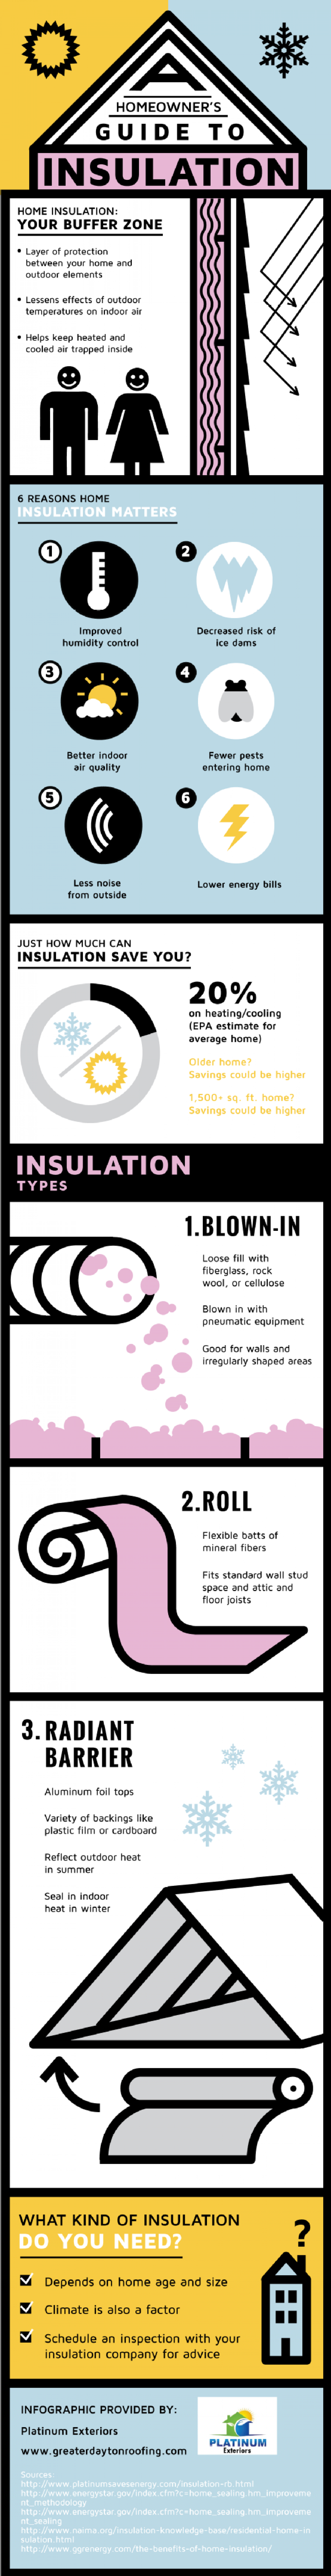 A Homeowner's Guide to Insulation Infographic